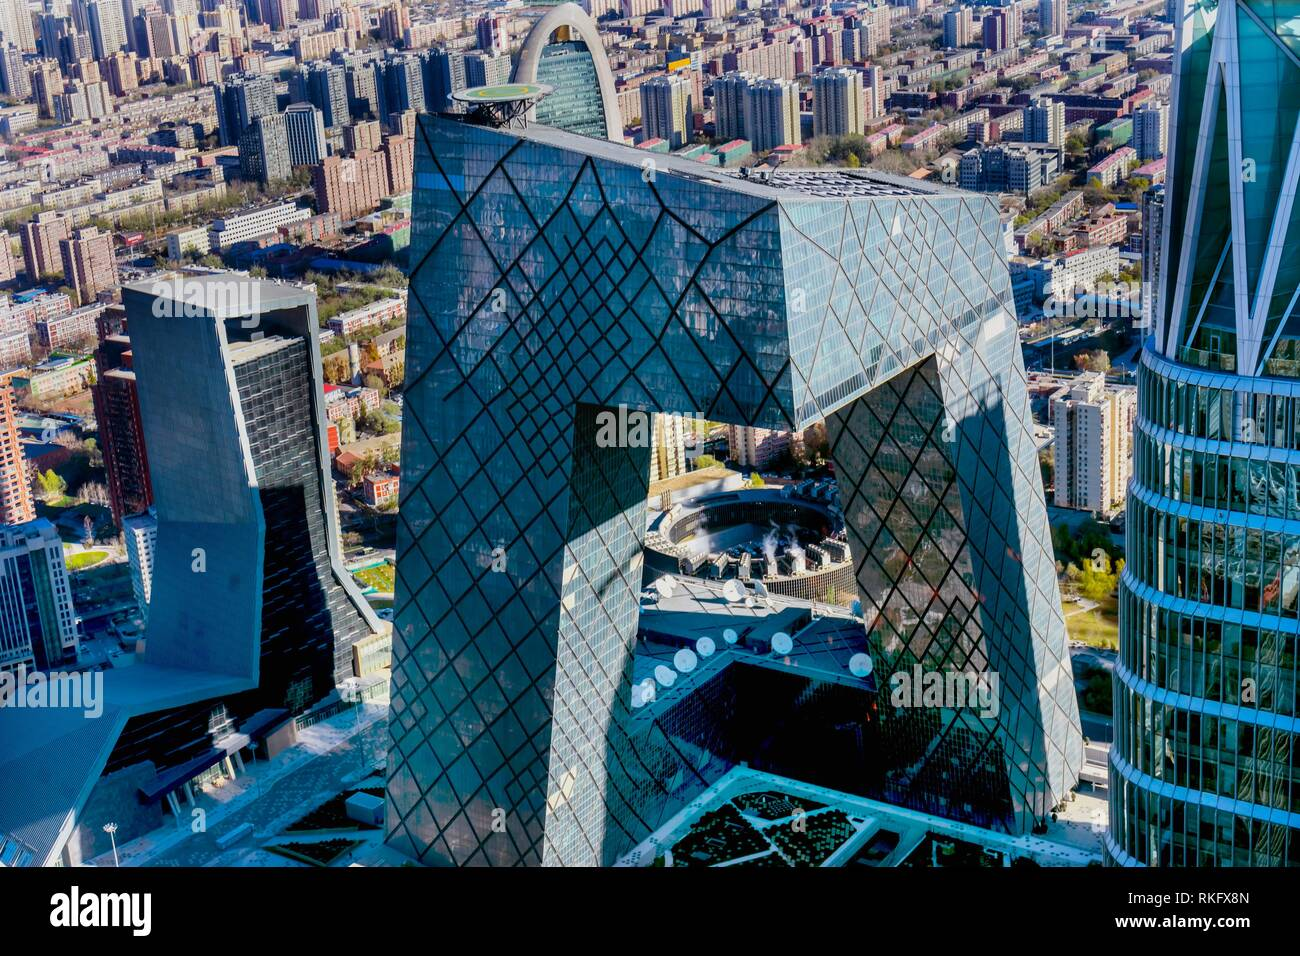 CCTV Pants Building China World Trade Center Towers Skyscrapers Guamao Centrall Business District Beijing China. - Stock Image